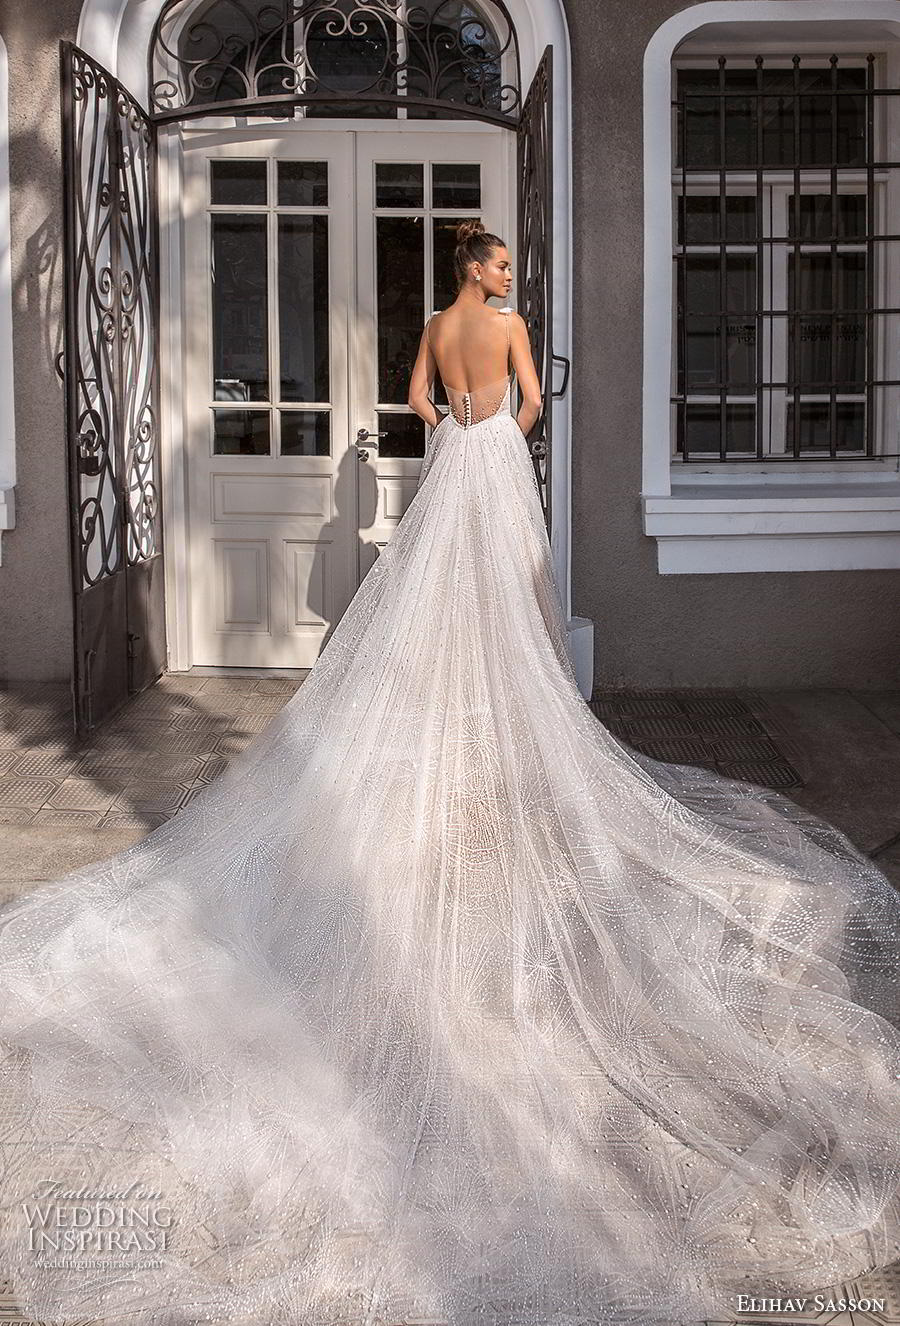 elihav sasson 2019 bridal sleeveless spaghetti strap deep v neck full embellishment glitzy romantic soft a line wedding dress backless royal train (5) bv